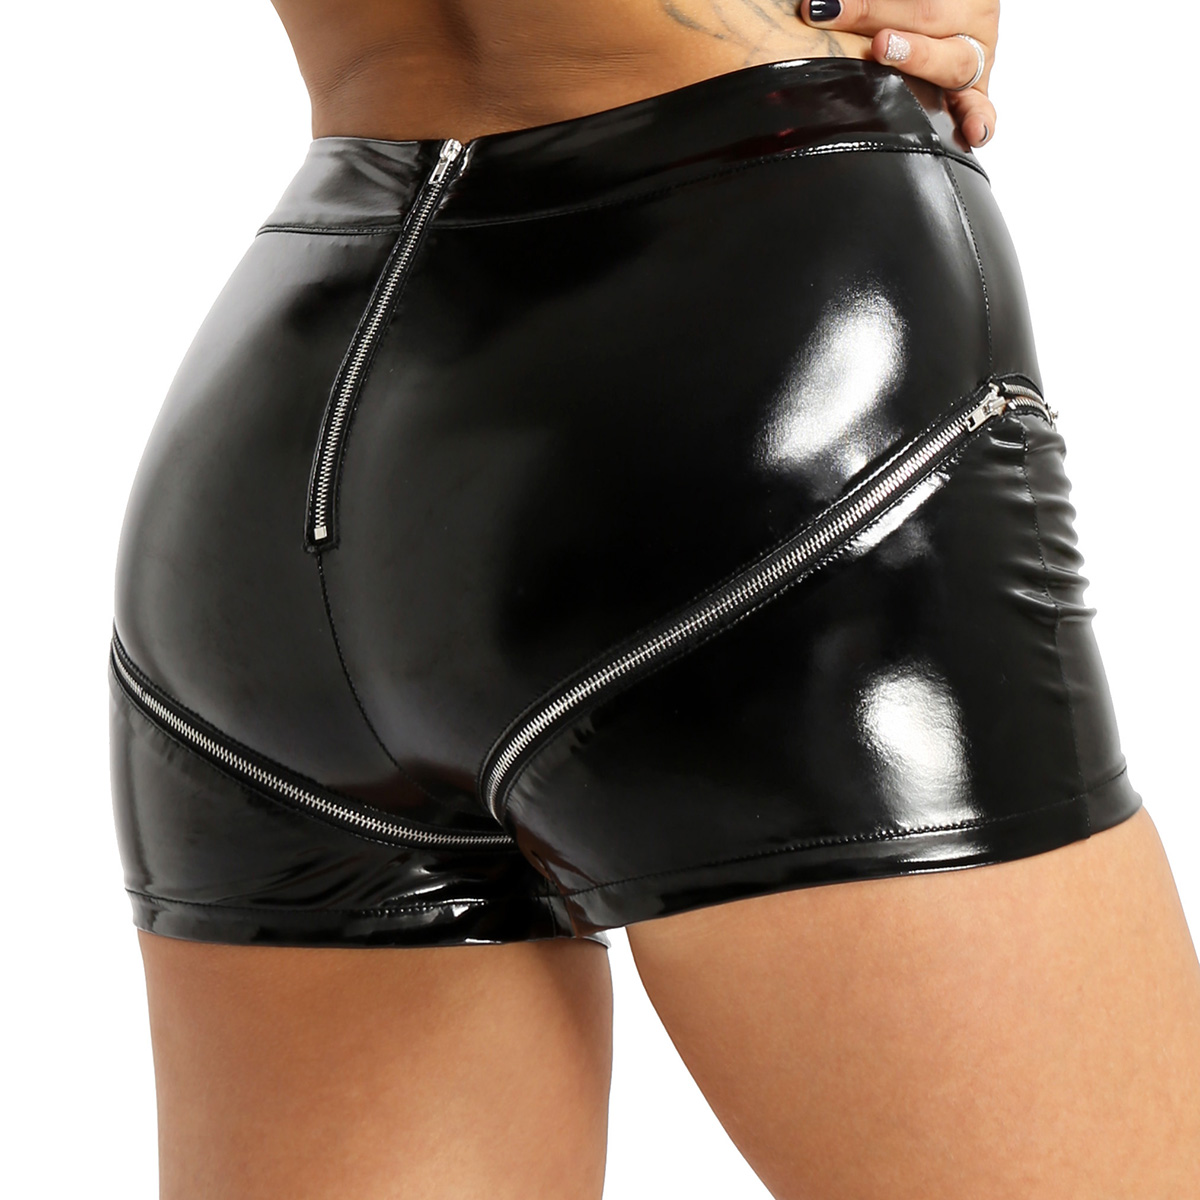 Women's Pole Dance Rave Shorts Lingerie Wet Look Patent Leather Hot Mini Shorts High Waist With Double Zipper Sexy Rave Clothes